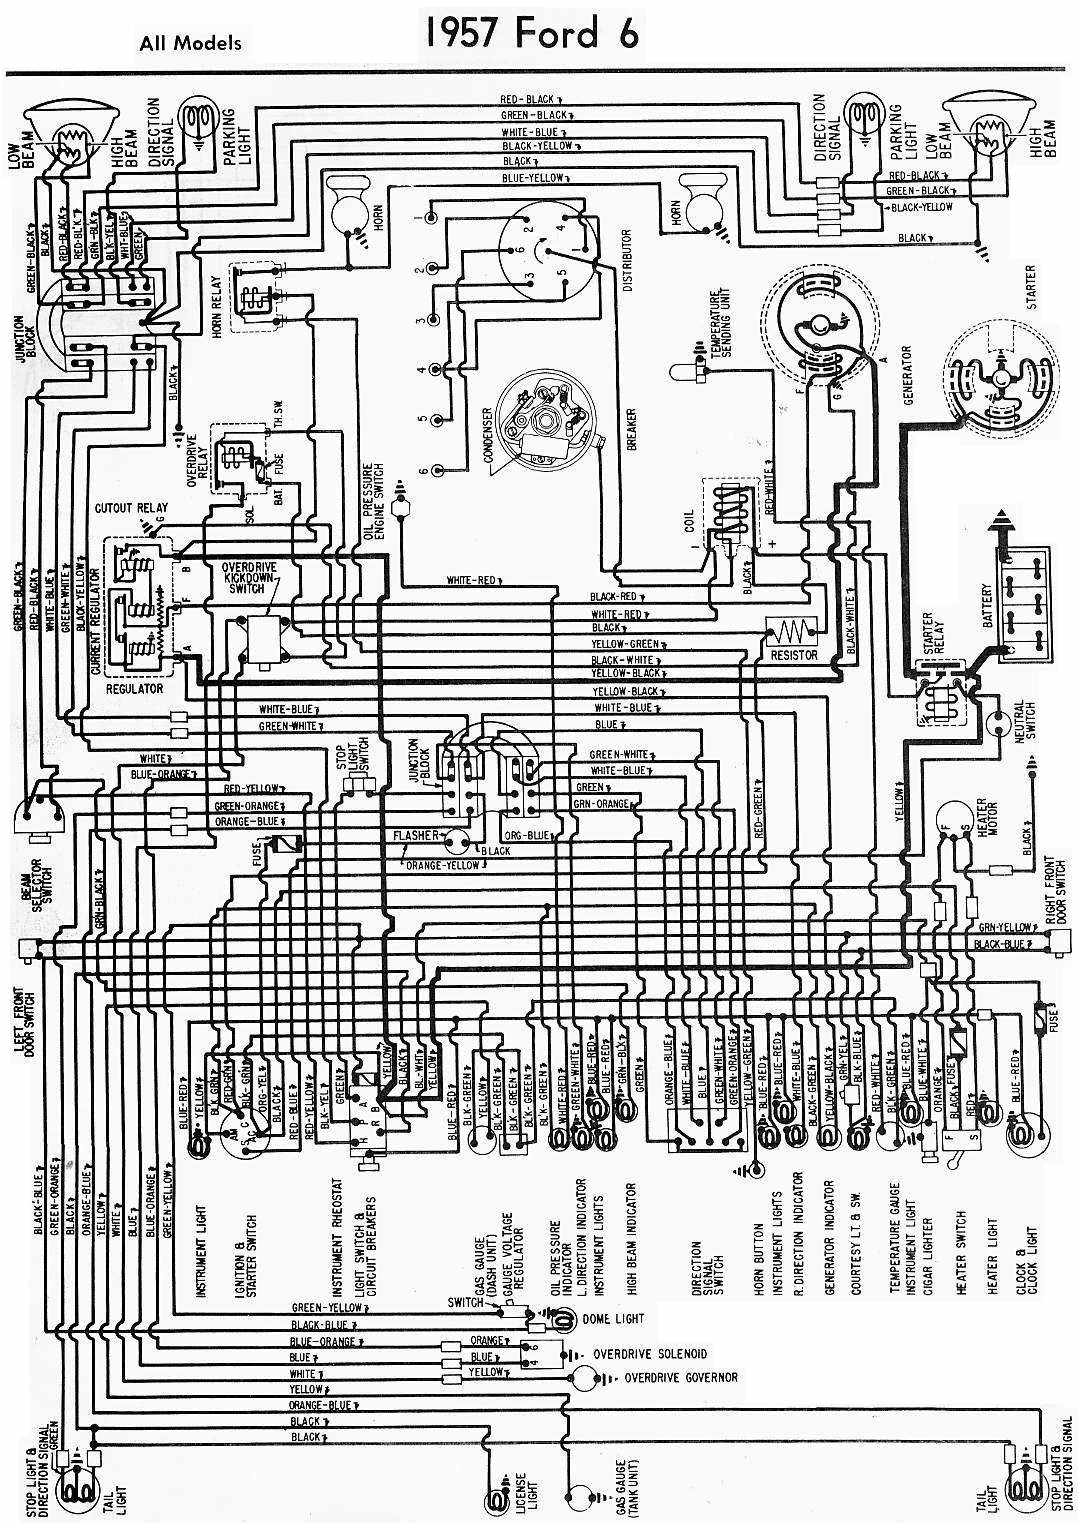 Ford 6 Cylinder All Models 1957 Wiring Diagram